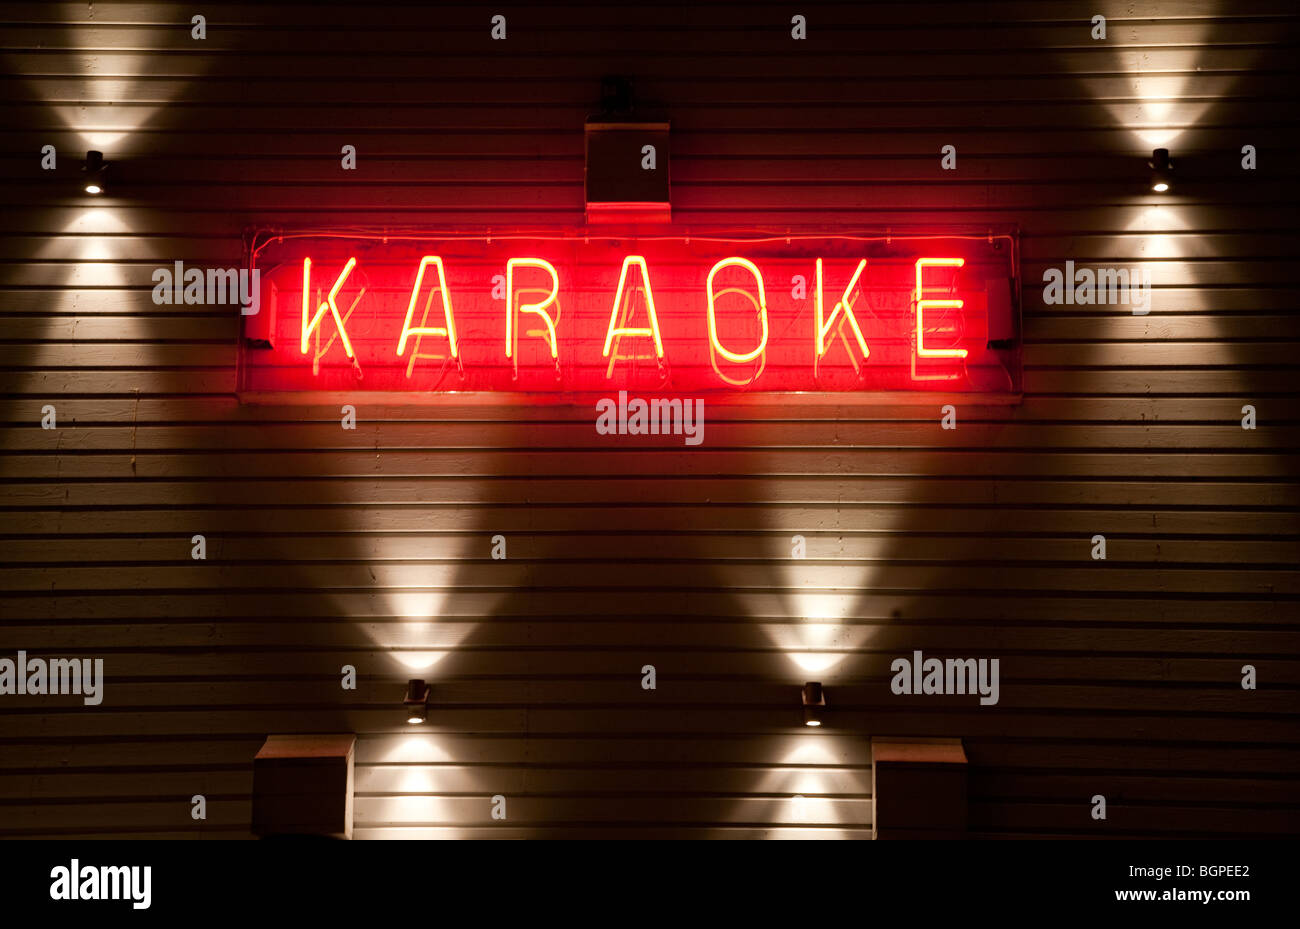 Red Karaoke neon sign on wall - Stock Image